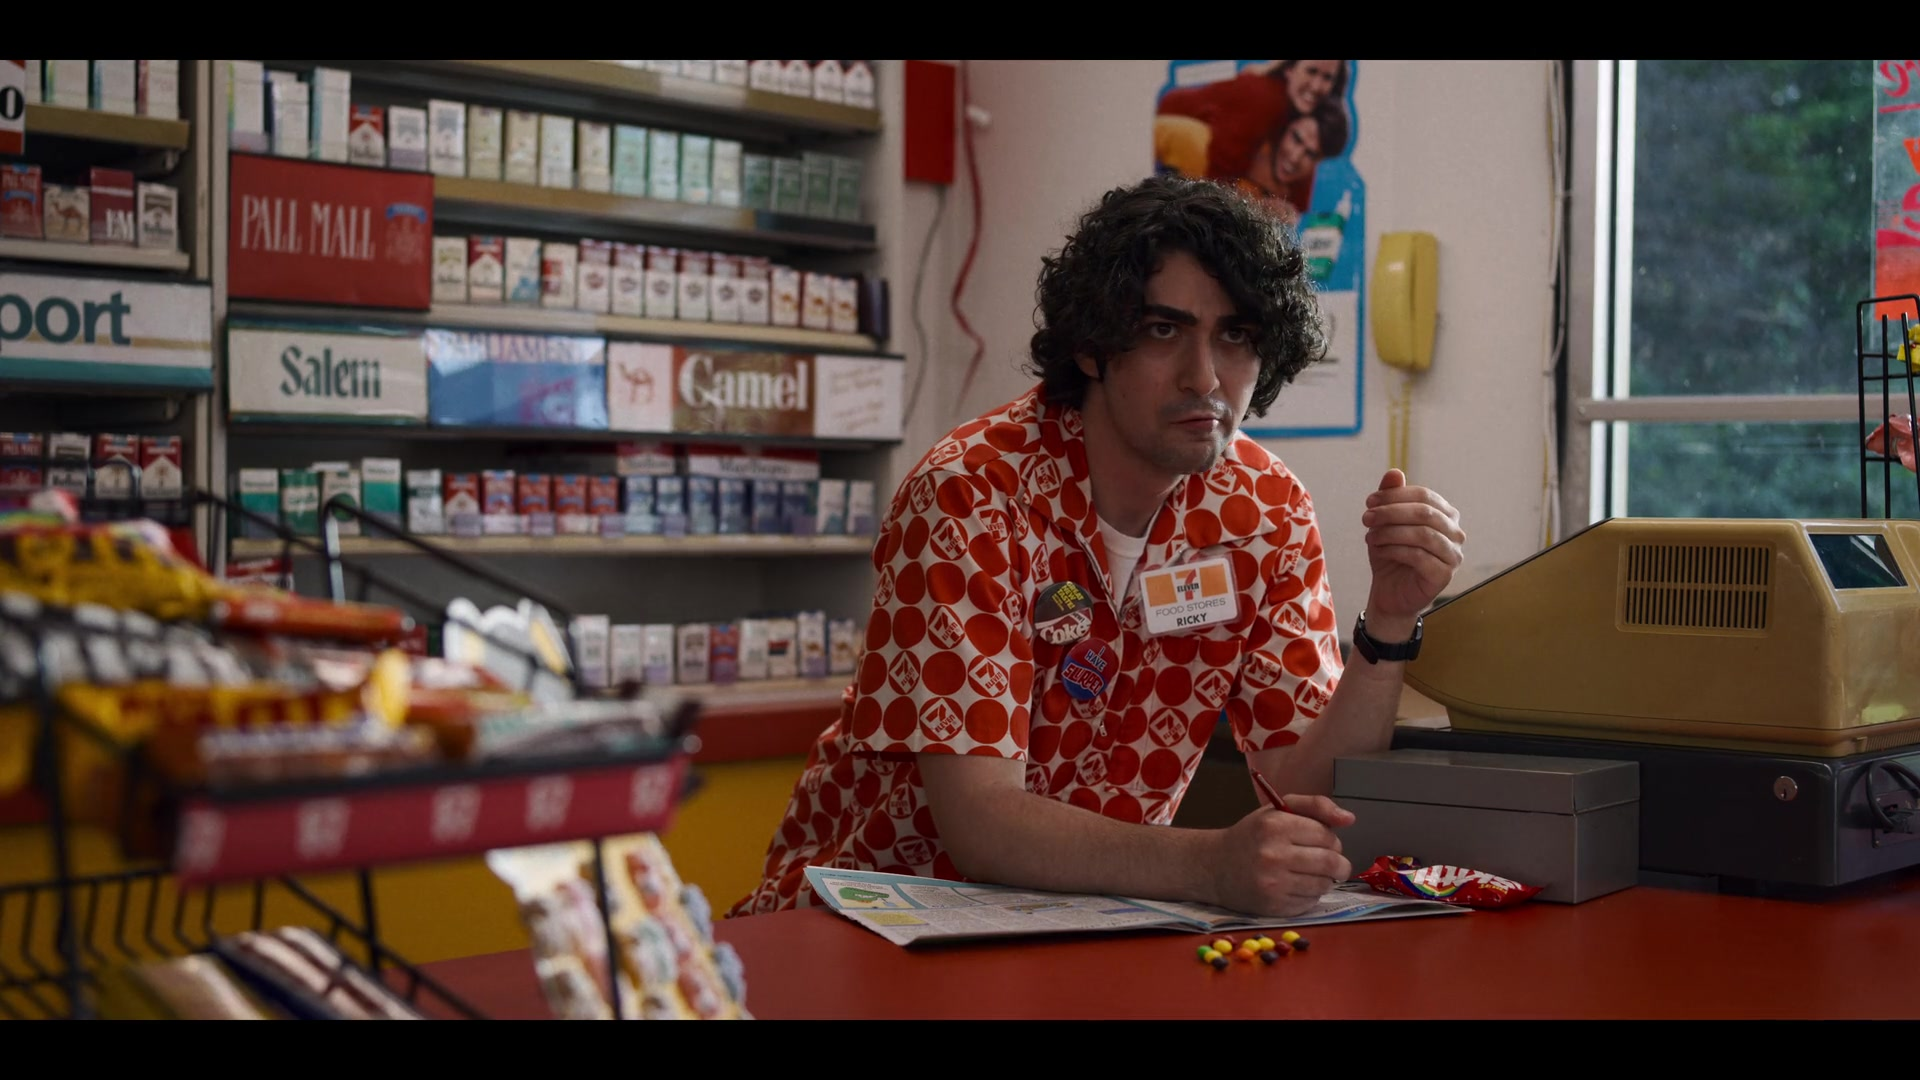 7-Eleven Store Worker and Skittles Candies in Stranger Things